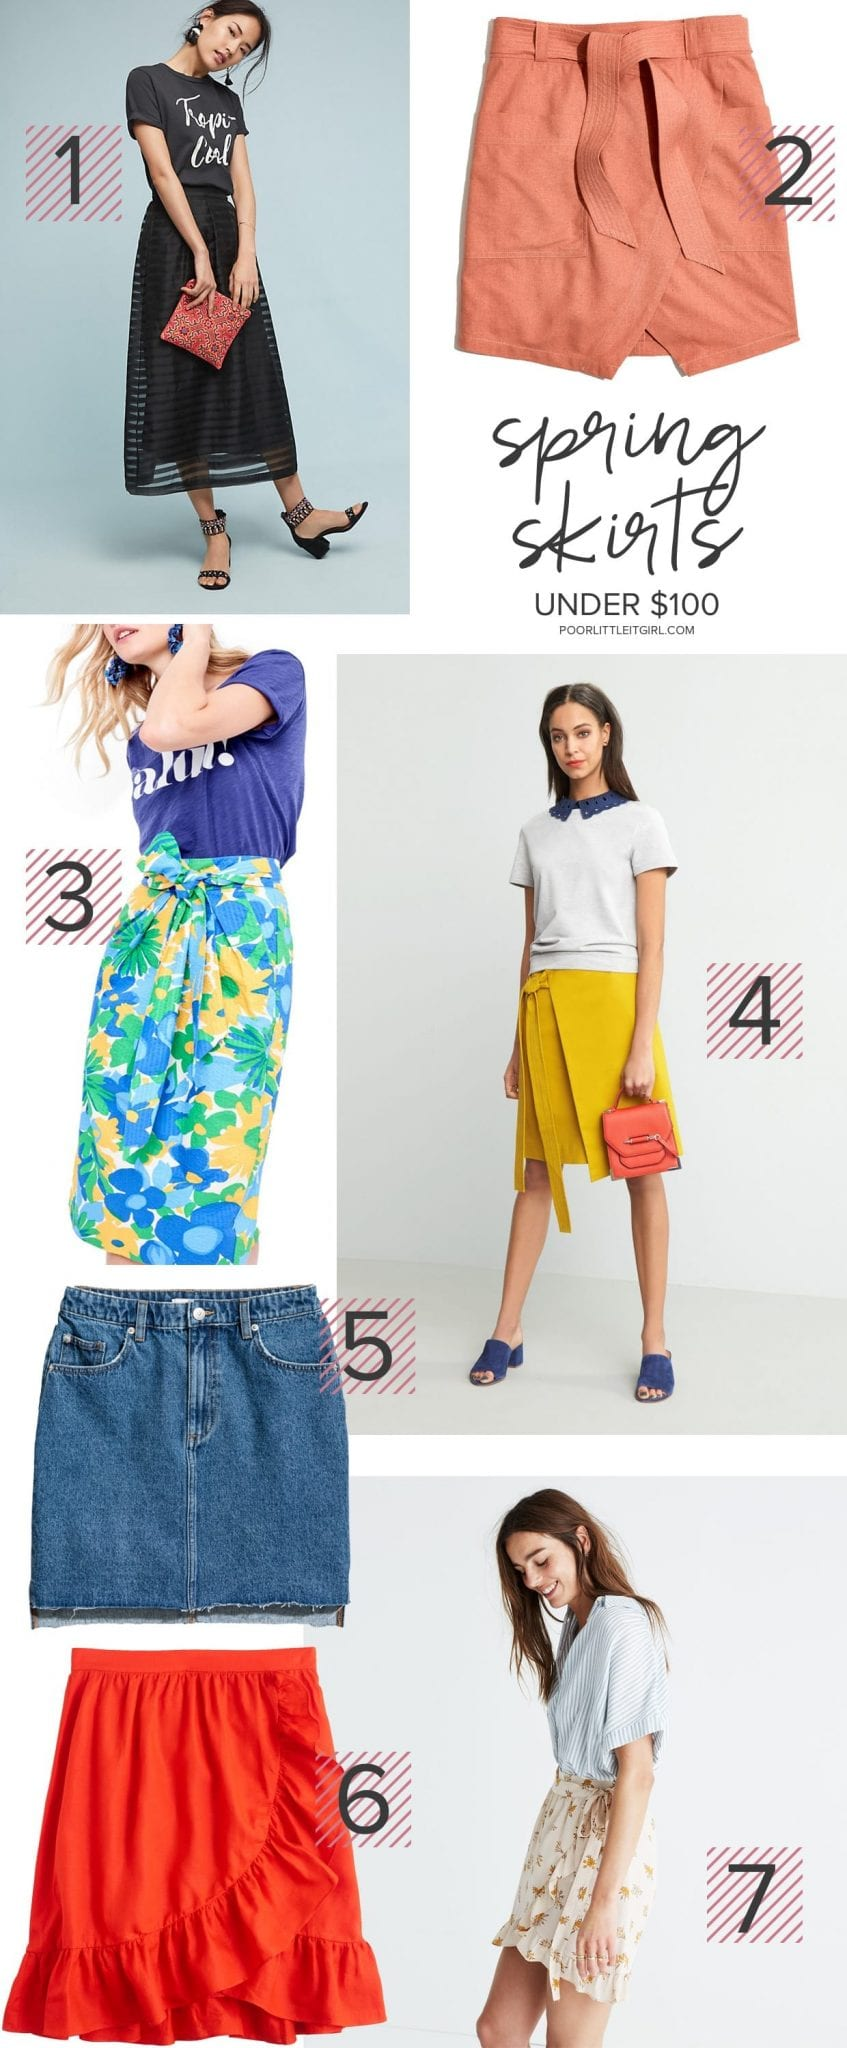 The Best Spring Skirts Under $100 - Poor Little It Girl